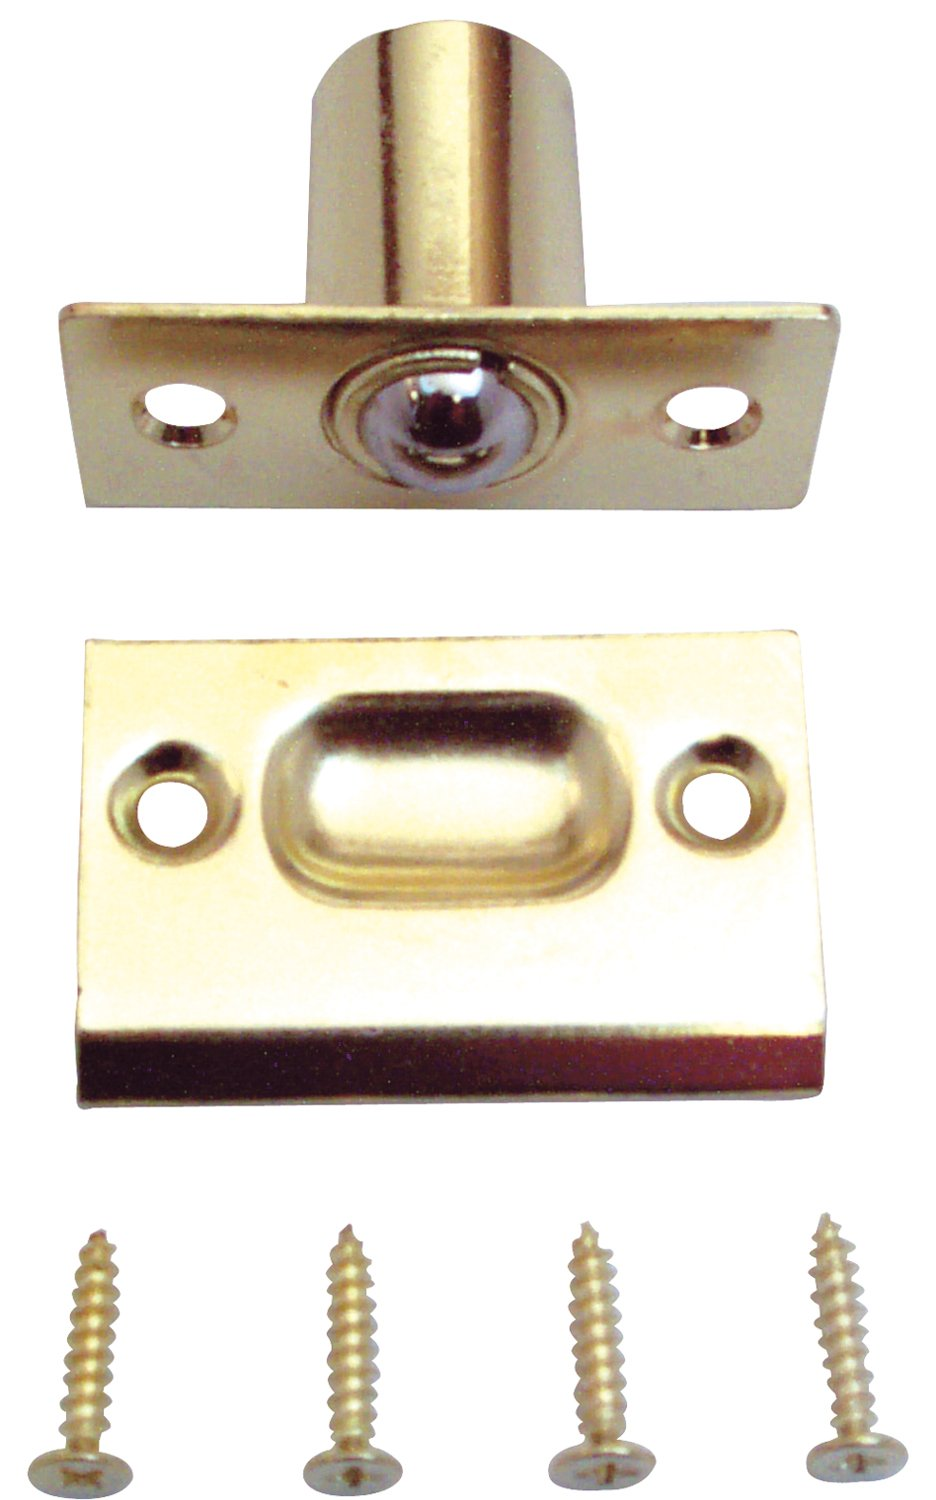 high-quality Prime-Line Products U 9132 Ball Catch & Strike, 1 in. x 2-1/4 in., Steel, Brass Plated, Adjustable